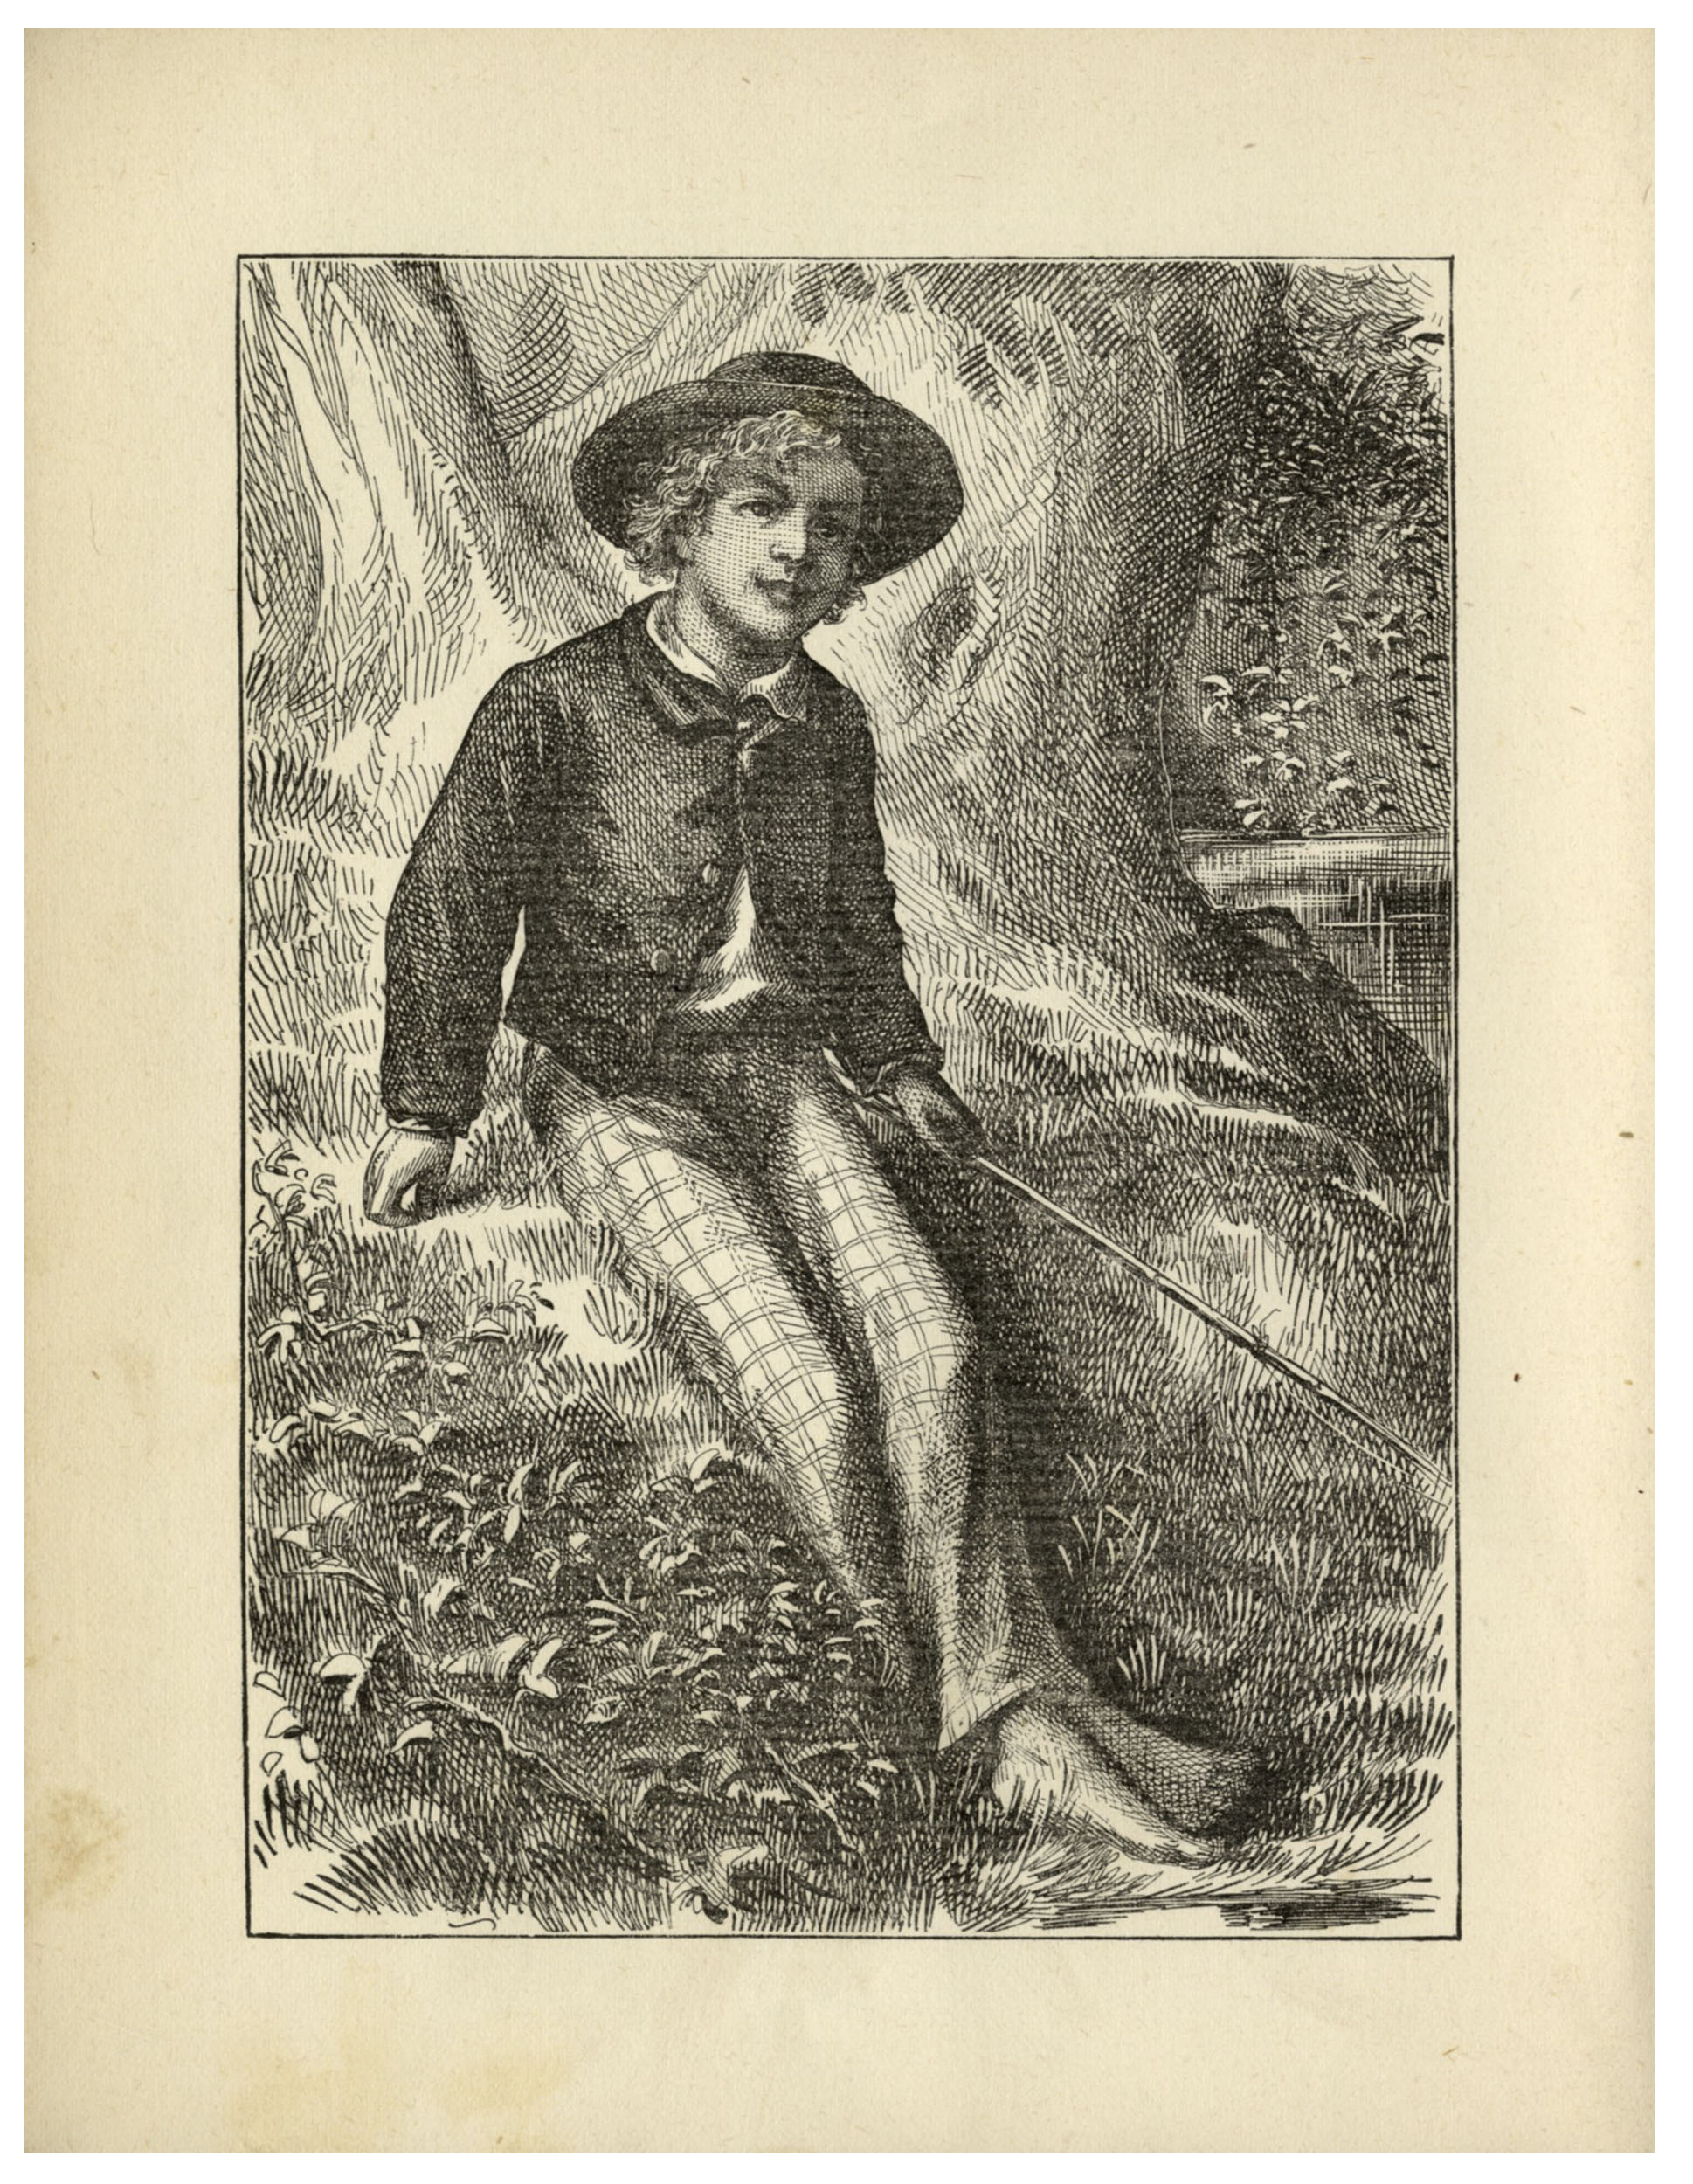 a comparison and contrast between tom sawyer and huckleberry finn two characters by mark twain Compare the adventures of huckleberry finn with the adventures of tom sawyer in easy-to-read side-by-side columns.